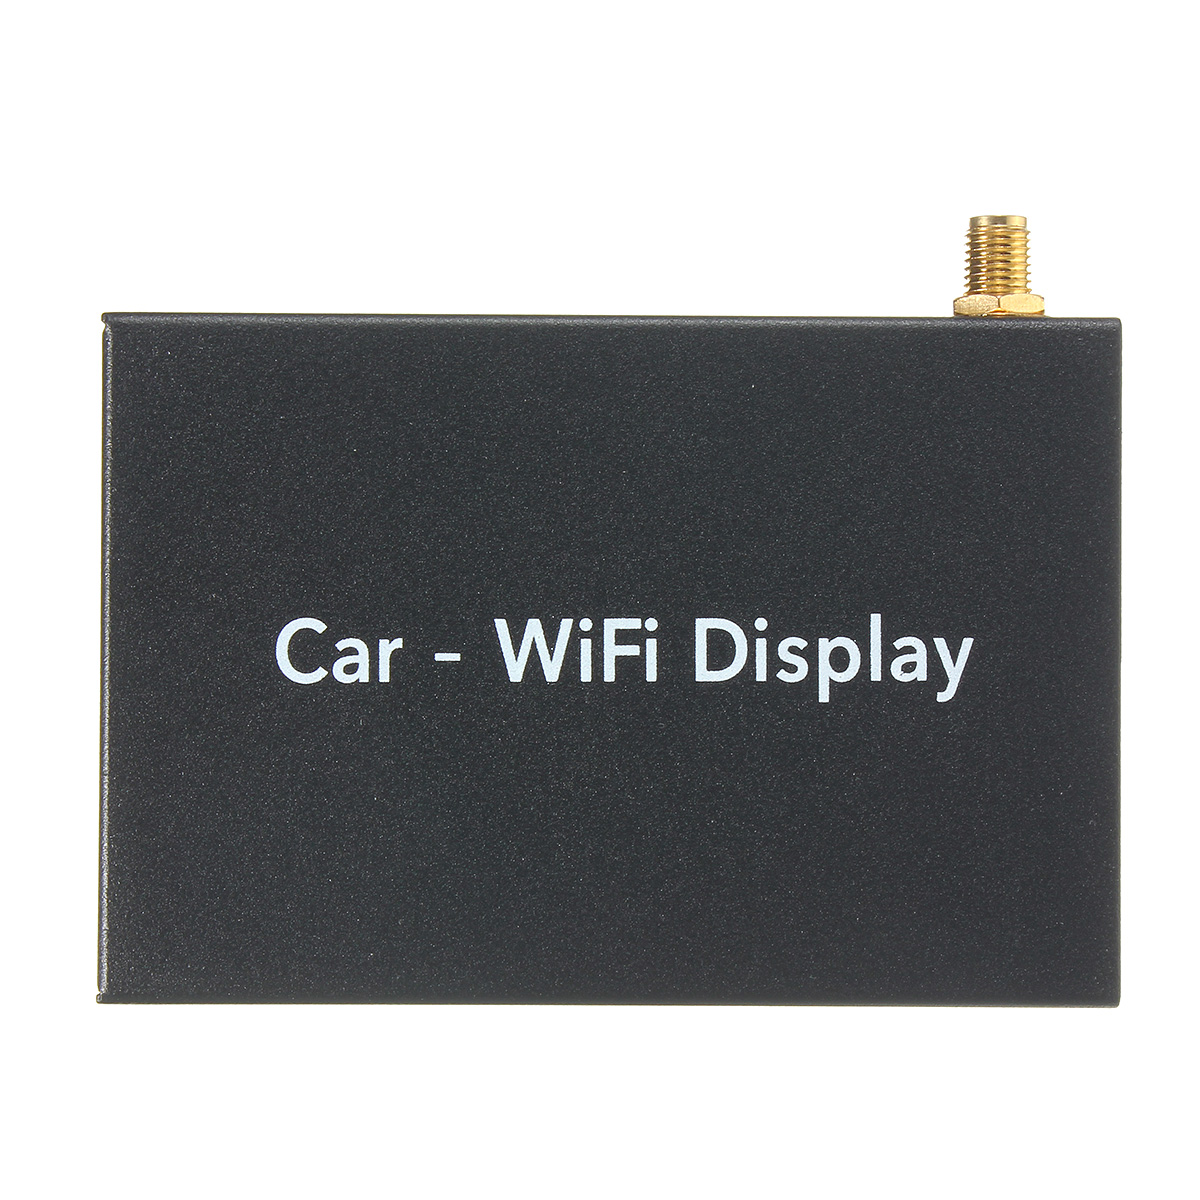 Touch WiFi Mirror Link Box Car DVD Player WiFi Display System For Android And IOS